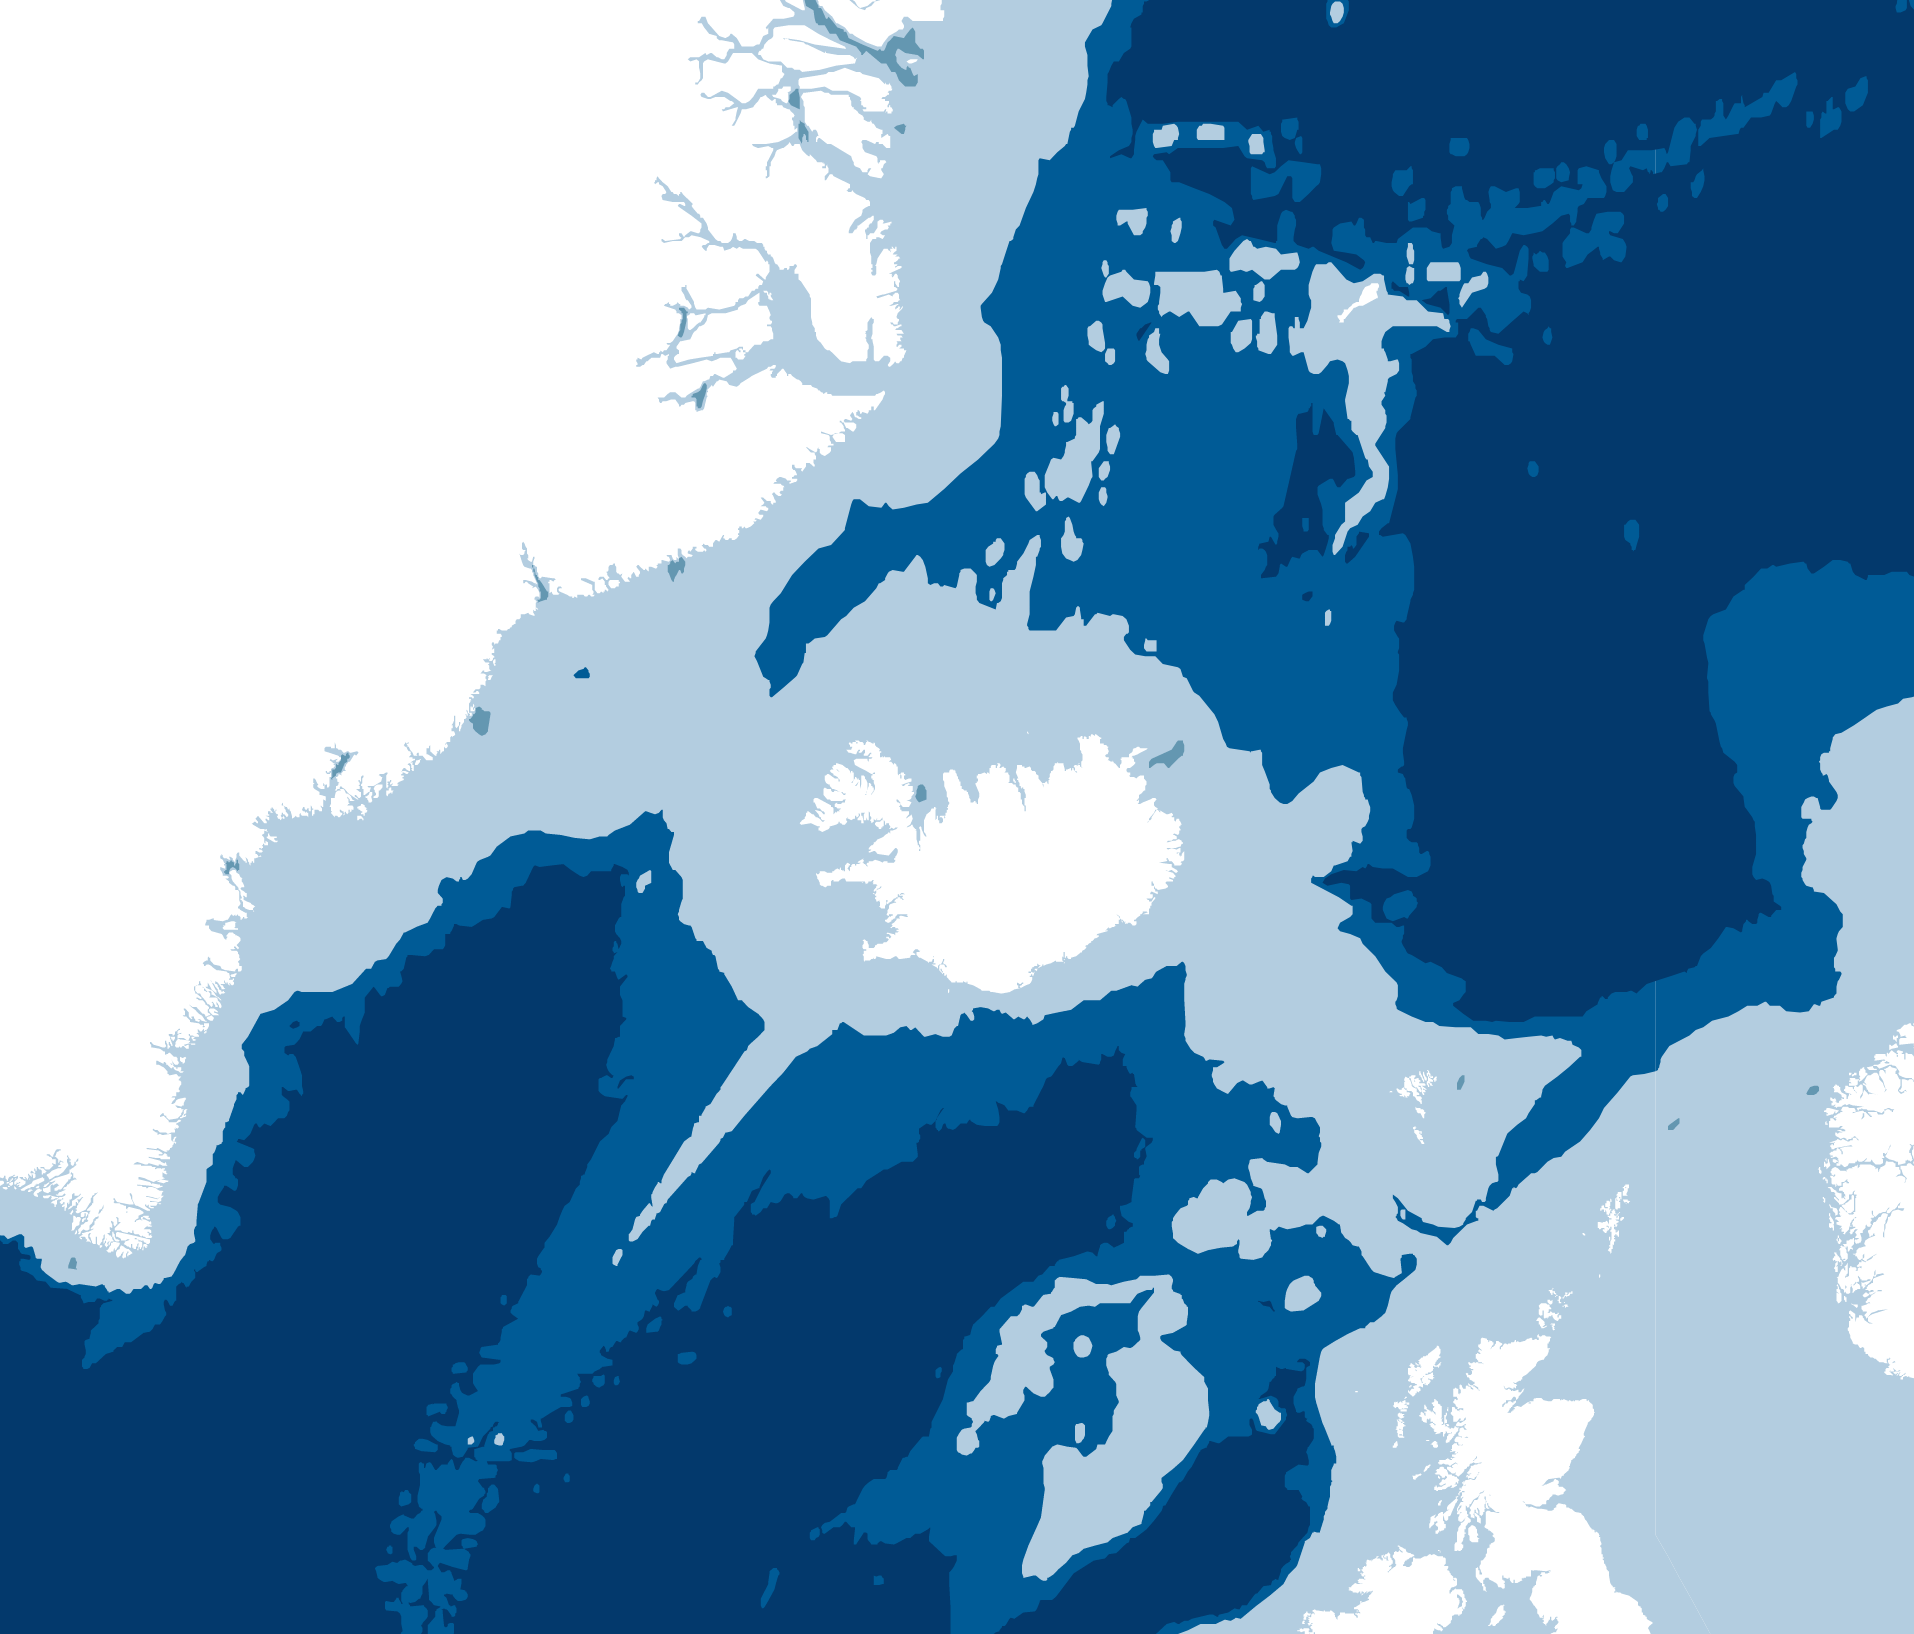 Bathymetry map of Ithe world using D3.js and Topojson | Maps ...